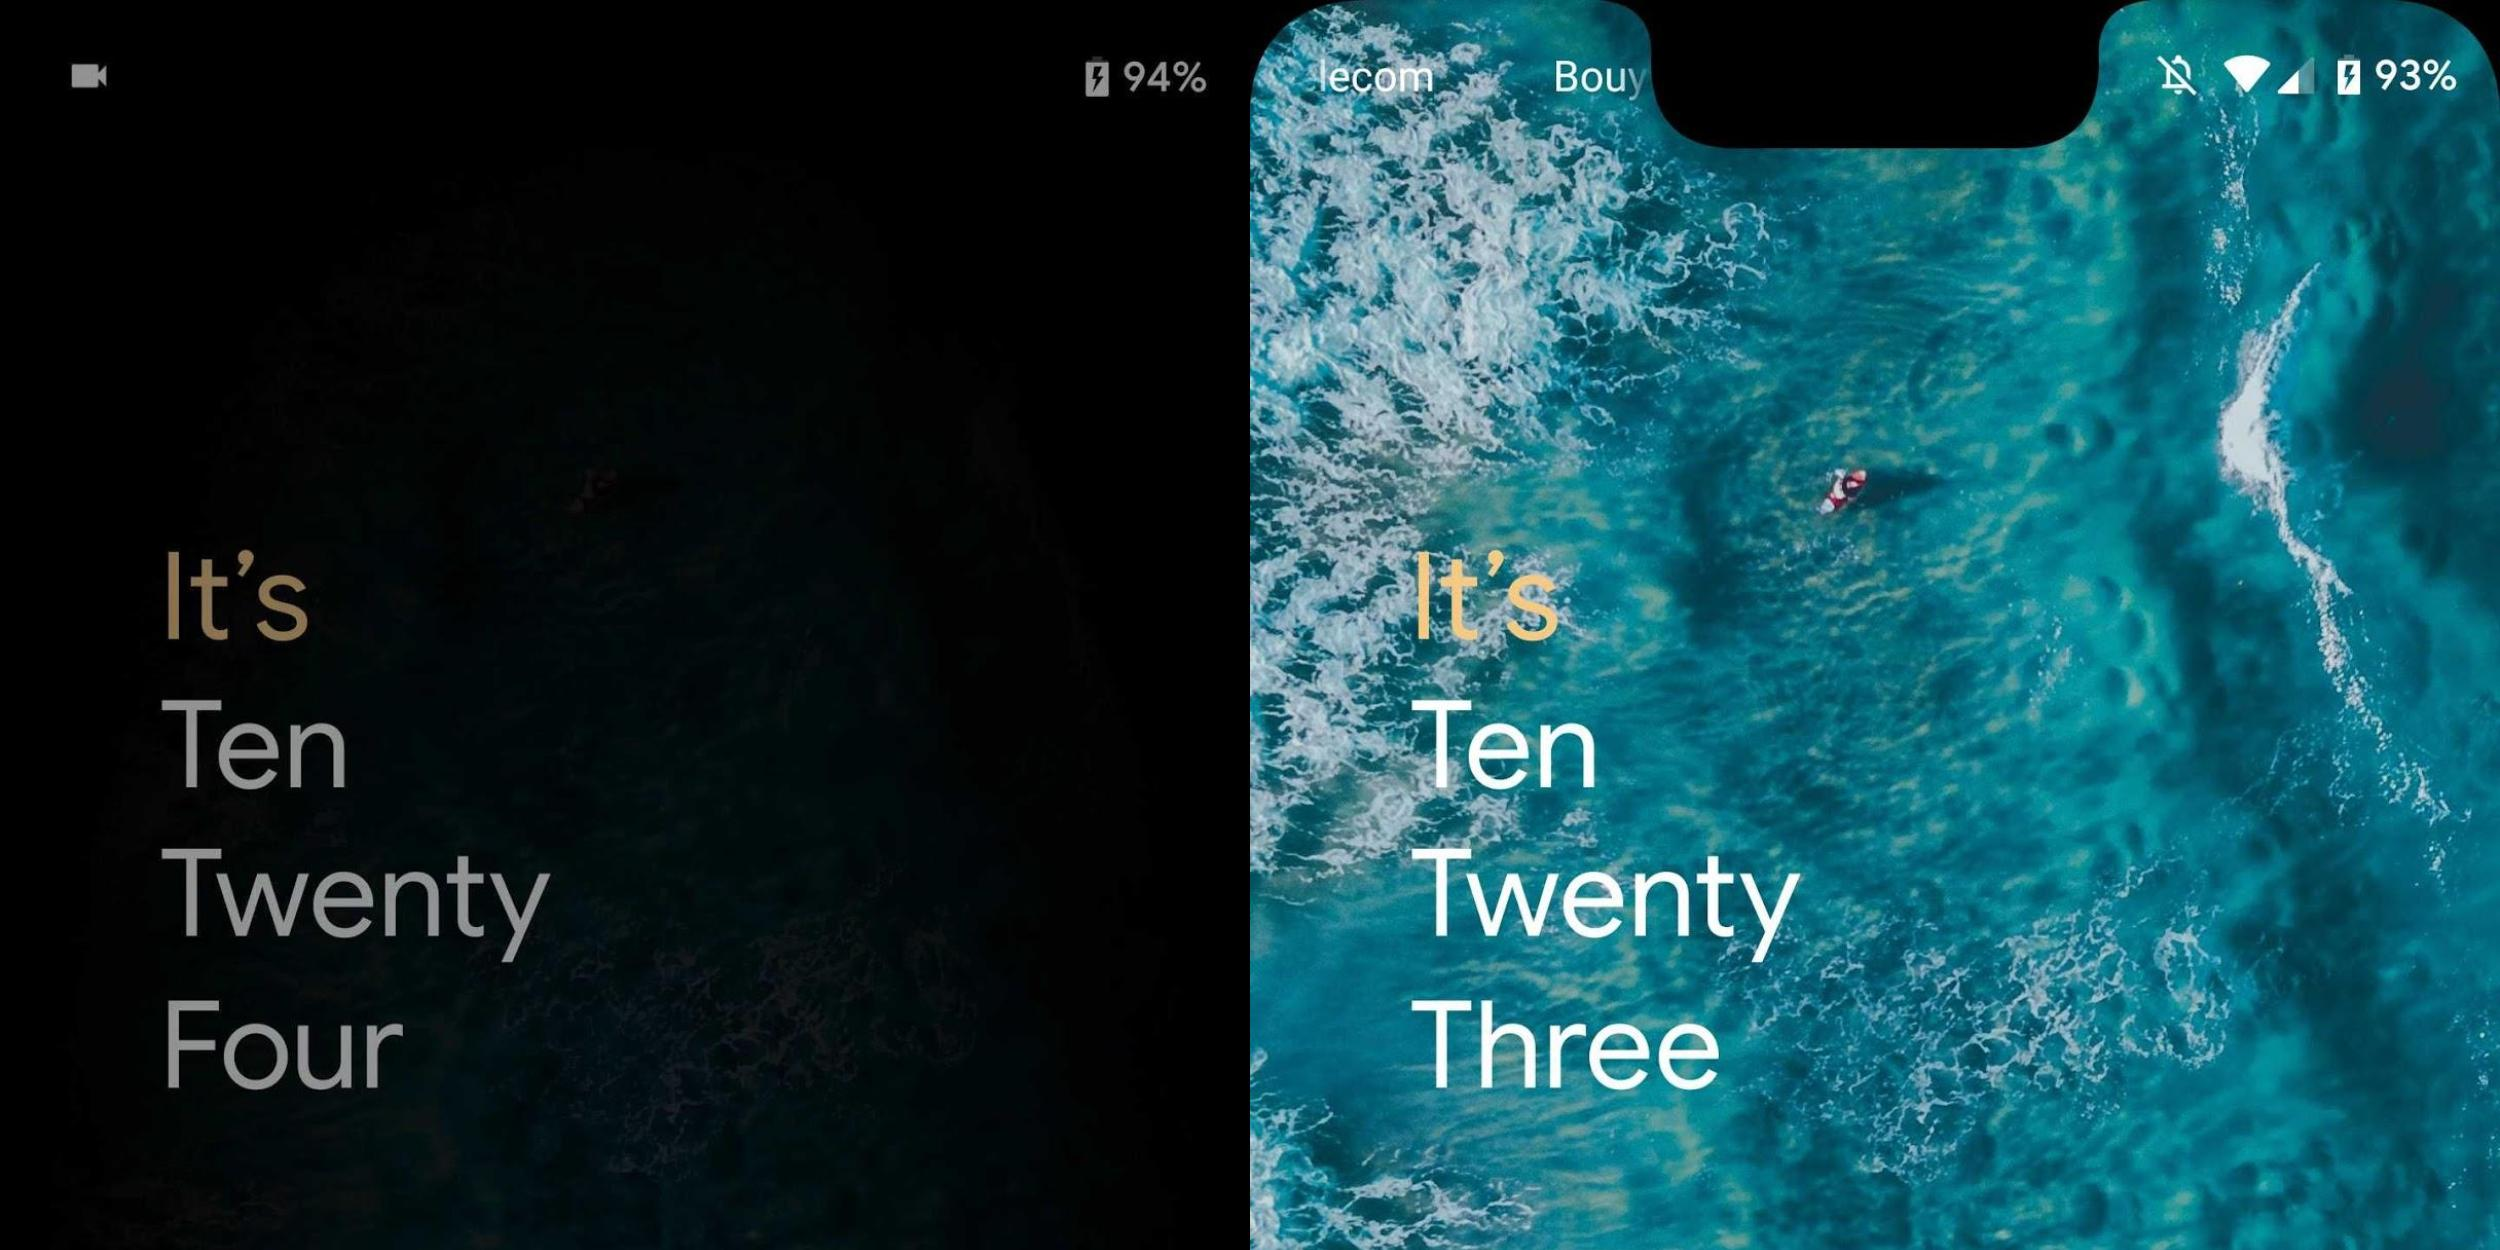 Android Q might let users customize the lock screen & AOD clock [Gallery]